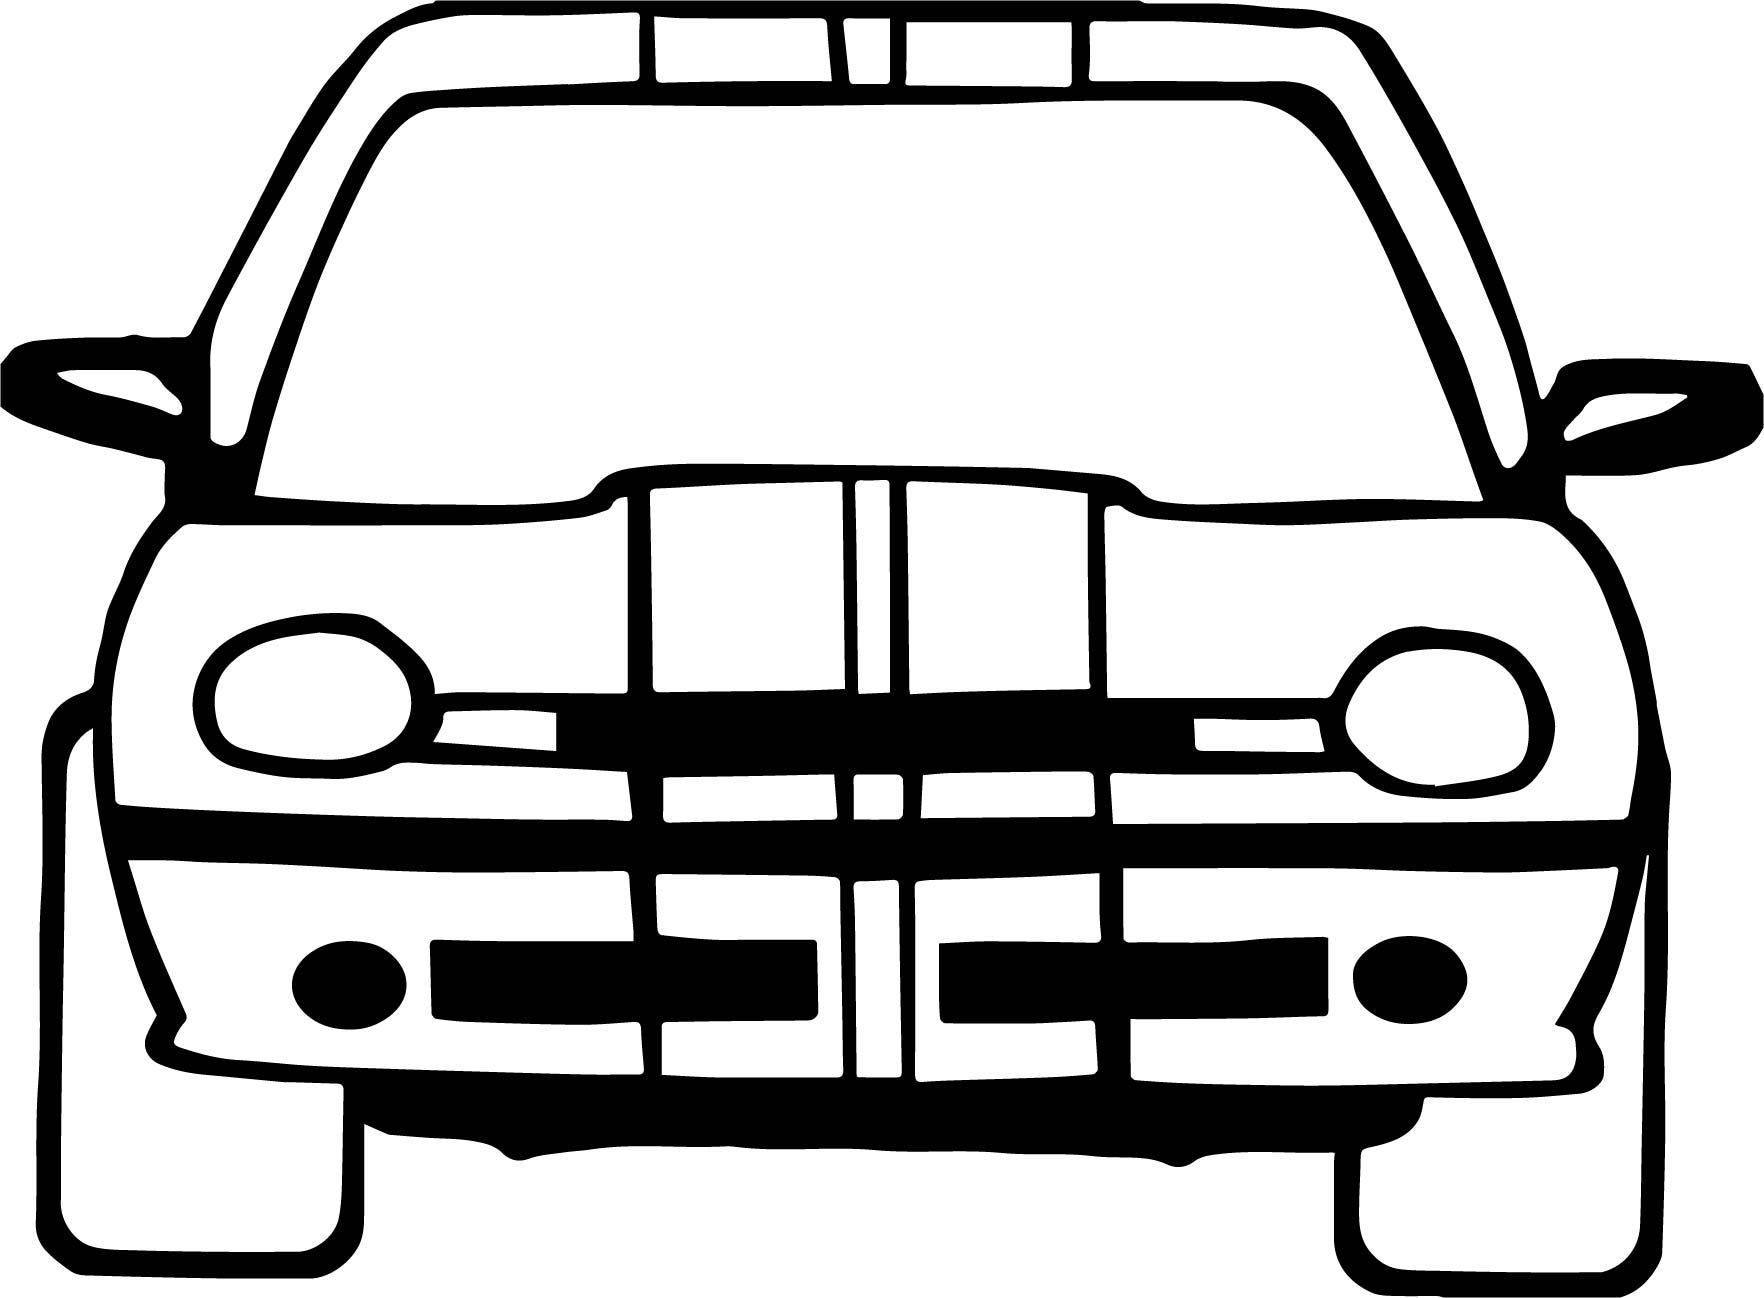 Cool Car Coloring Pages - Coloring Home | 1298x1764